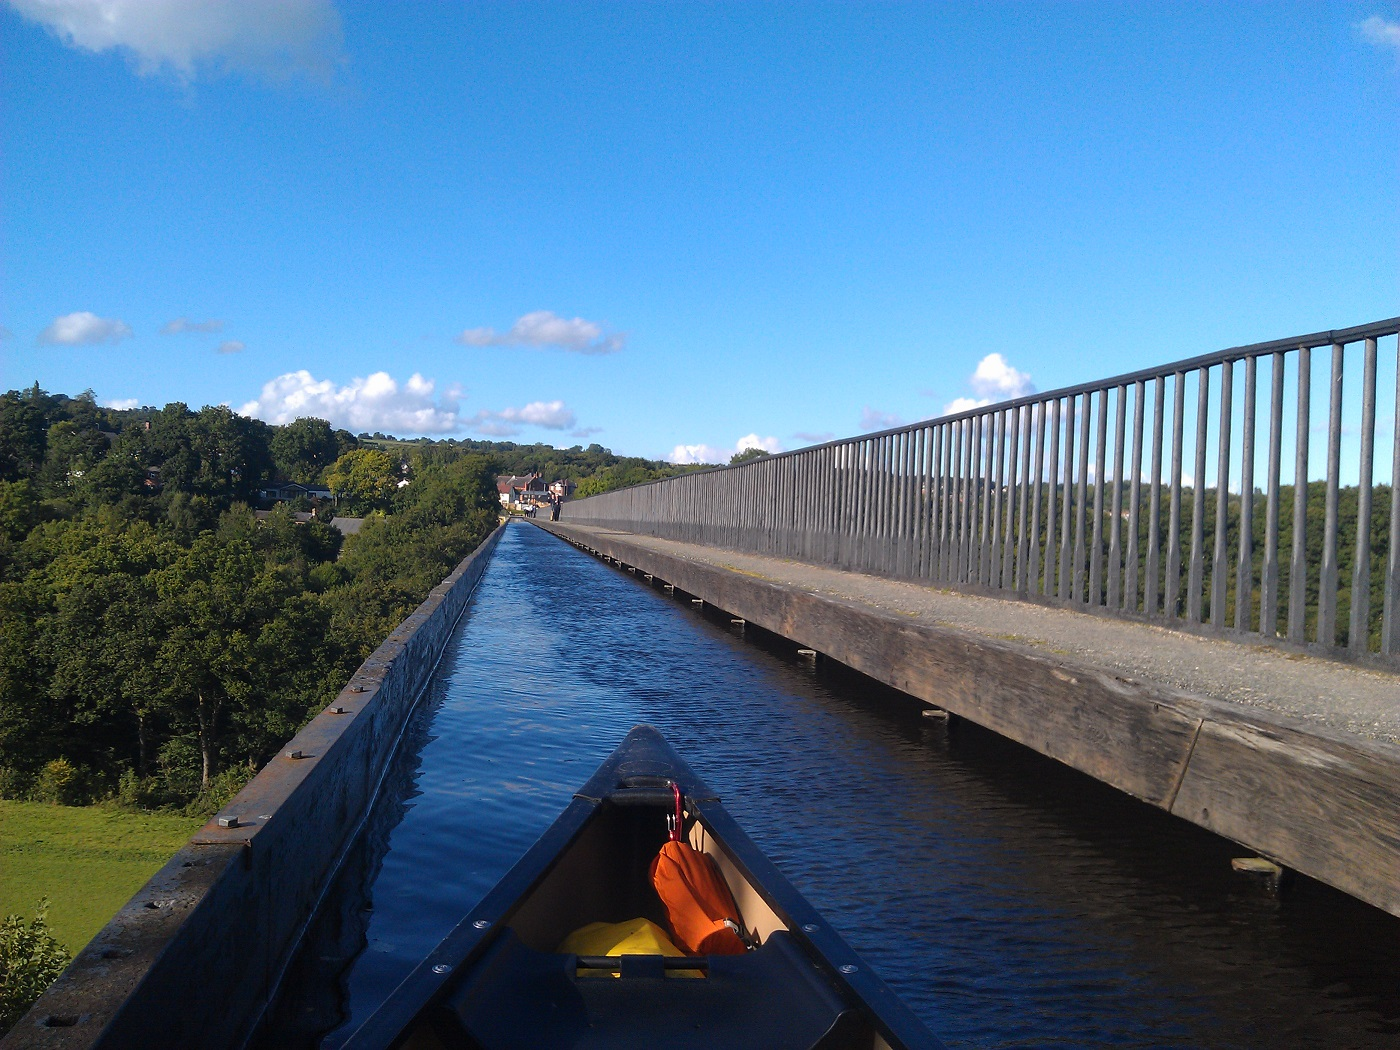 Canoe over the Pontcysyllte Aqueduct